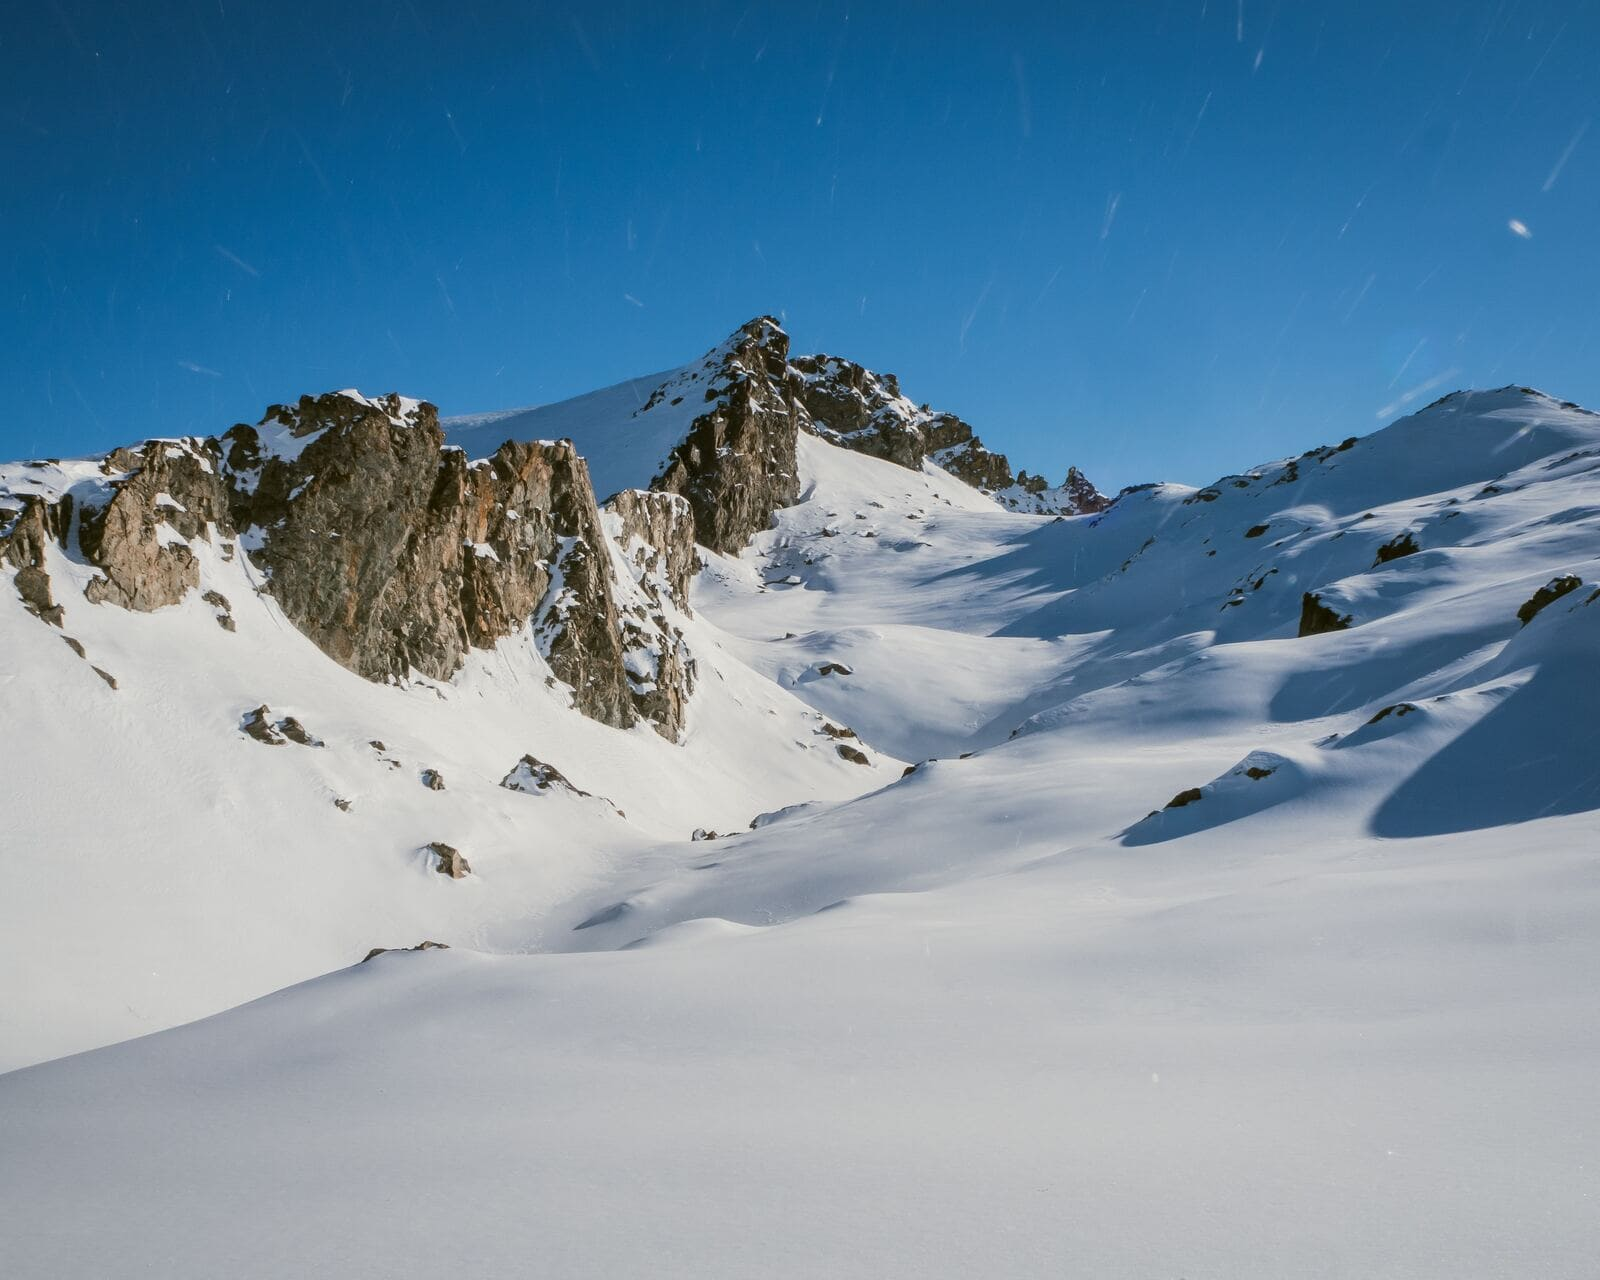 Les Deux Alpes, France - image used from Valentin Rechitean for Ski Lifts